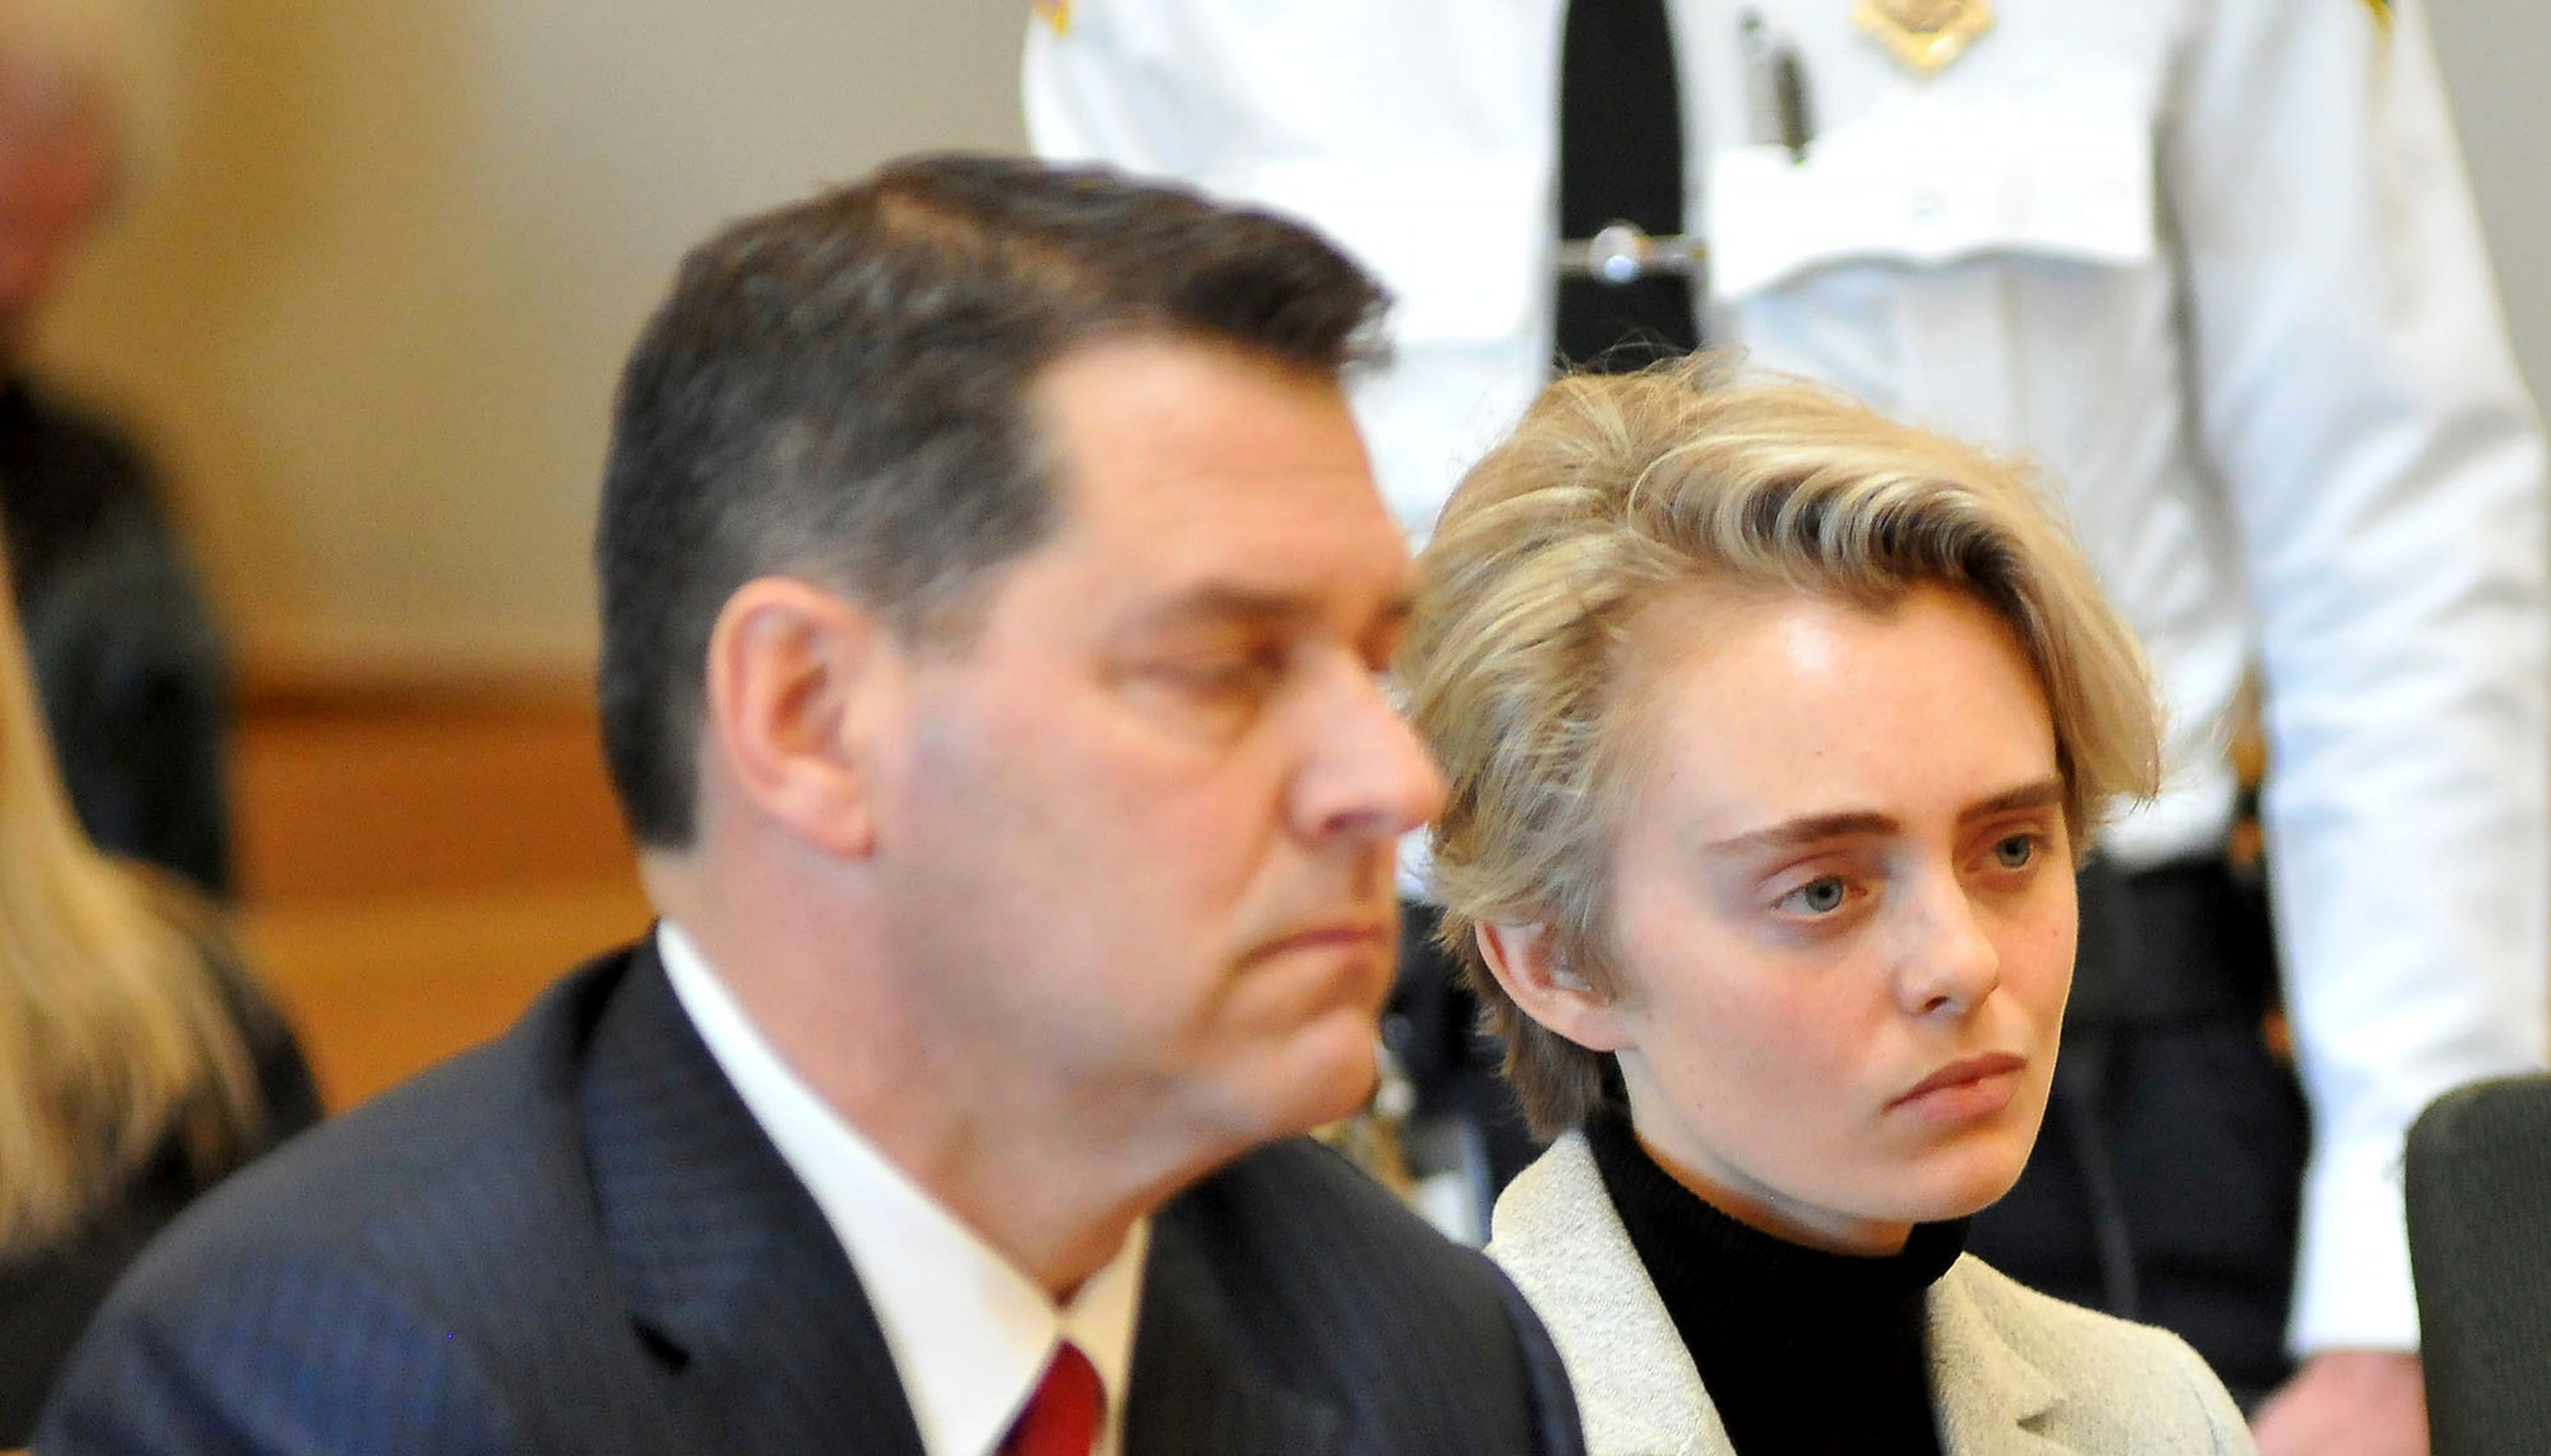 Suicide texting case: Michelle Carter sent to jail after